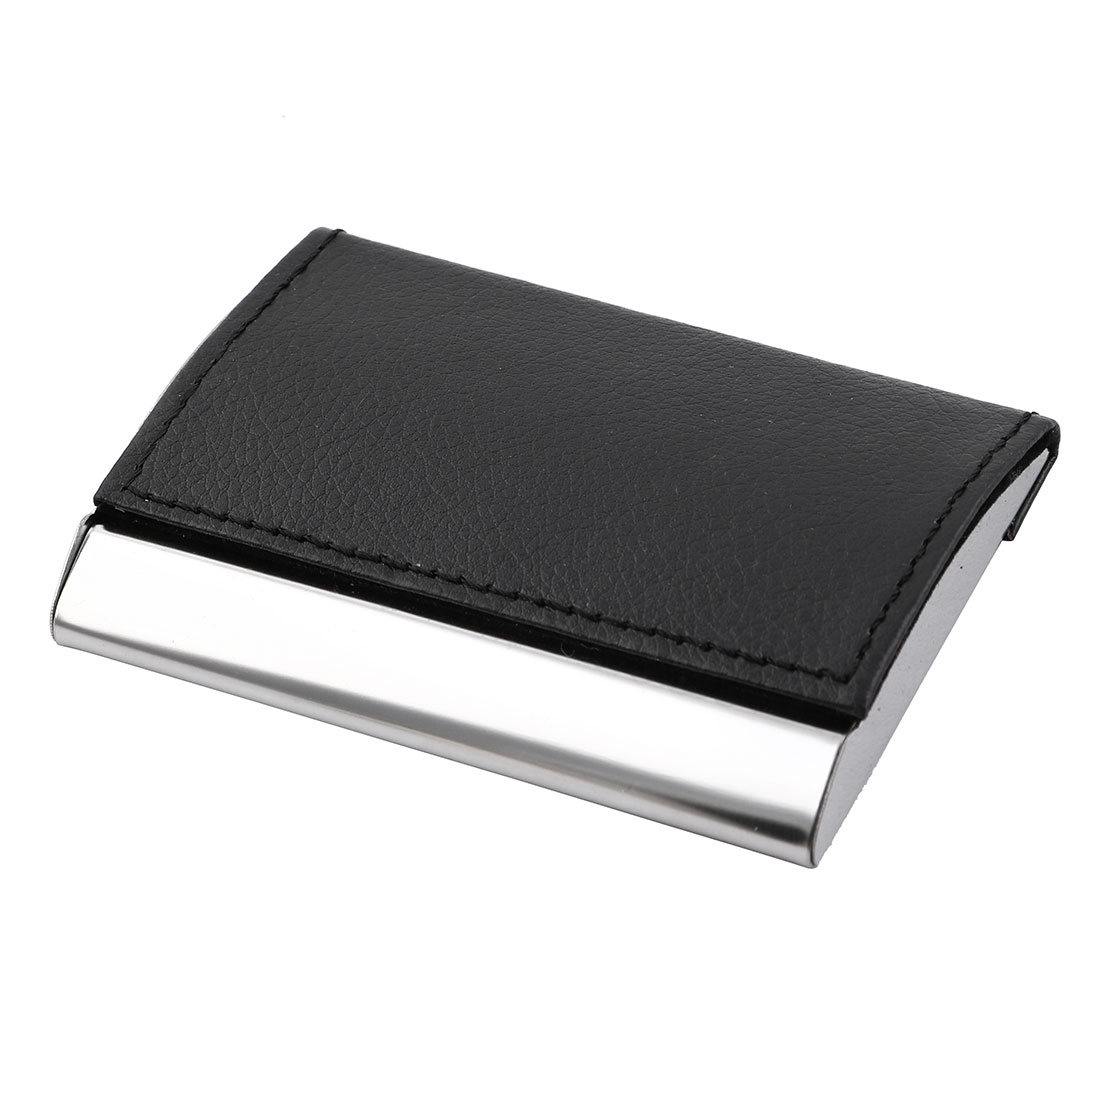 Black Faux Leather Surface Business Card Holder Case